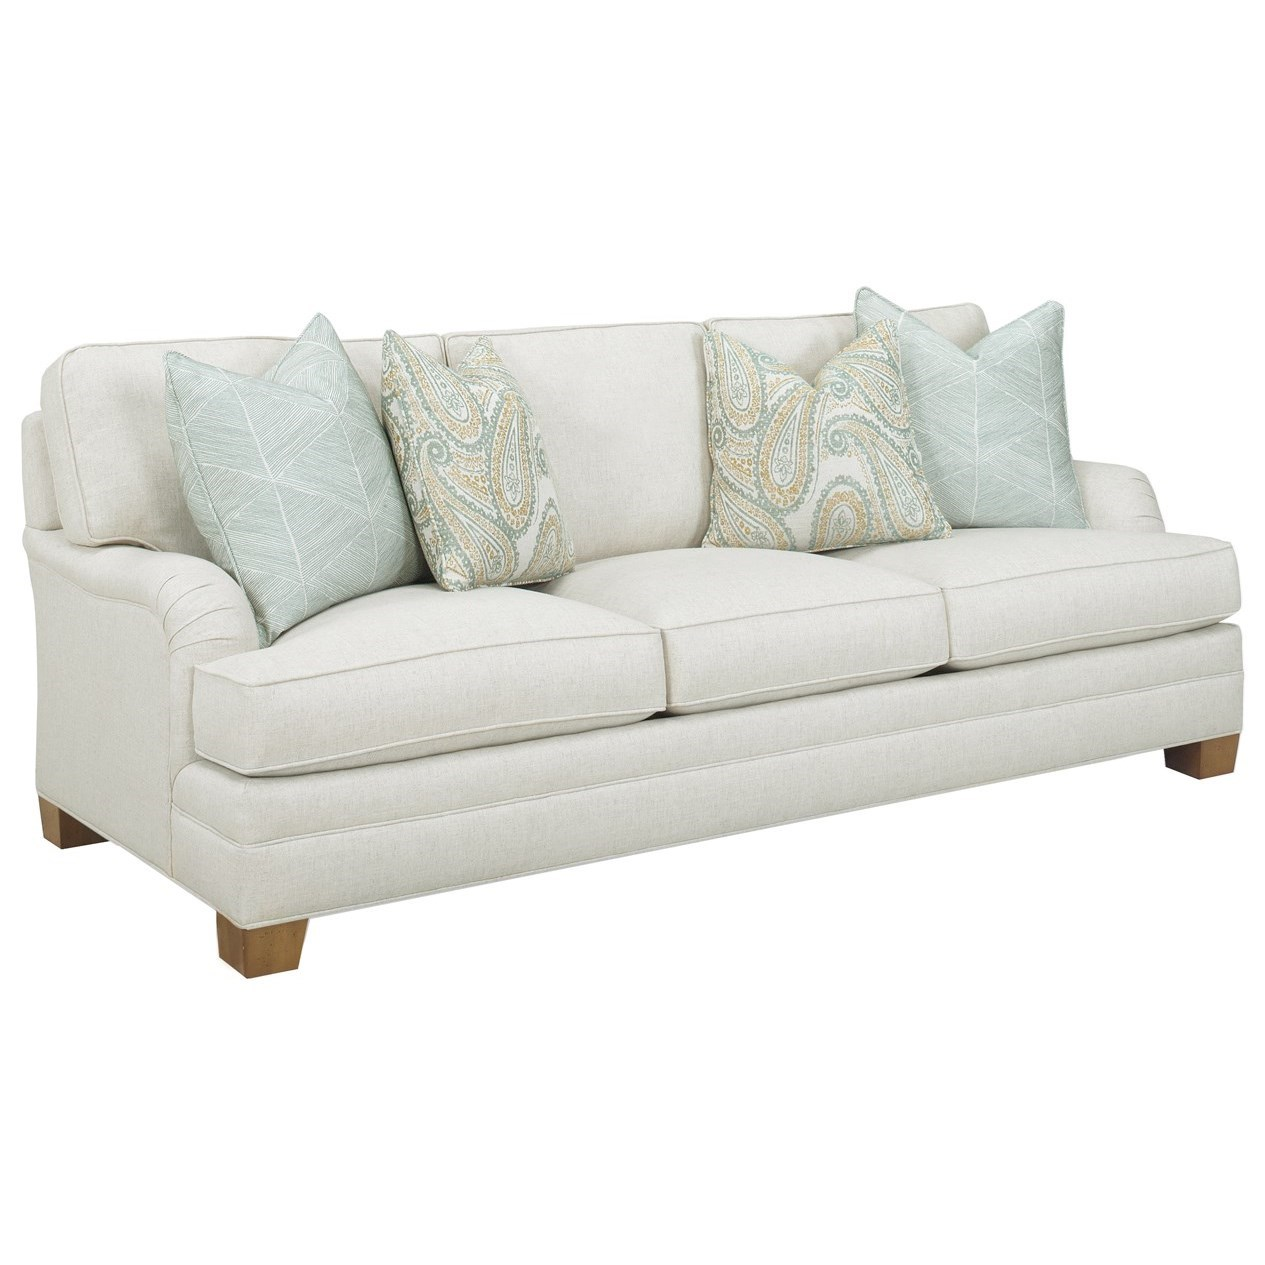 Personal Design Series Townsend Customizable Sofa by Lexington at Johnny Janosik